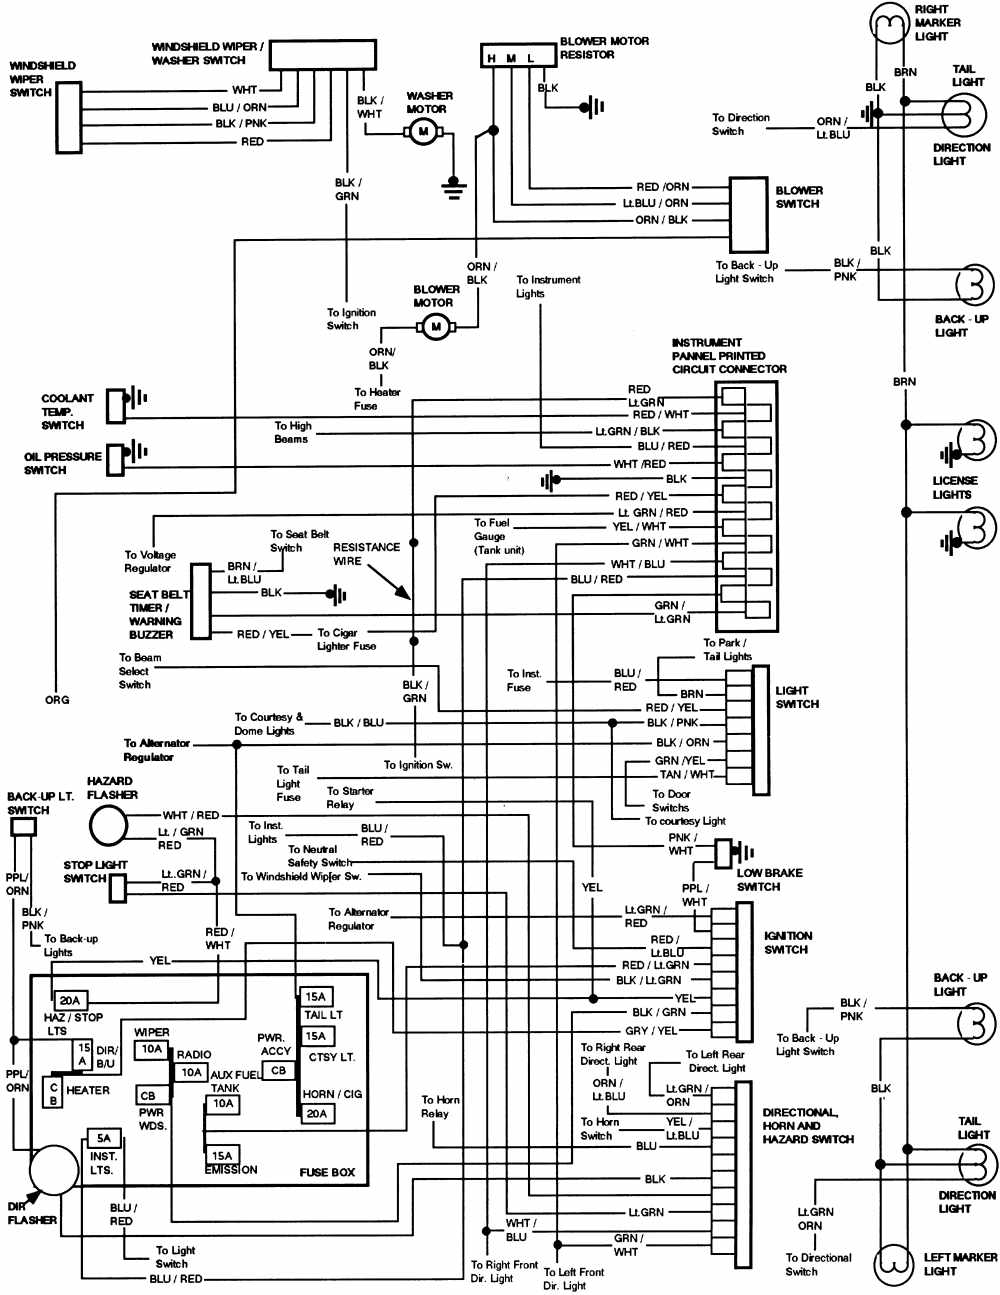 fan wiring diagram 2000 vw